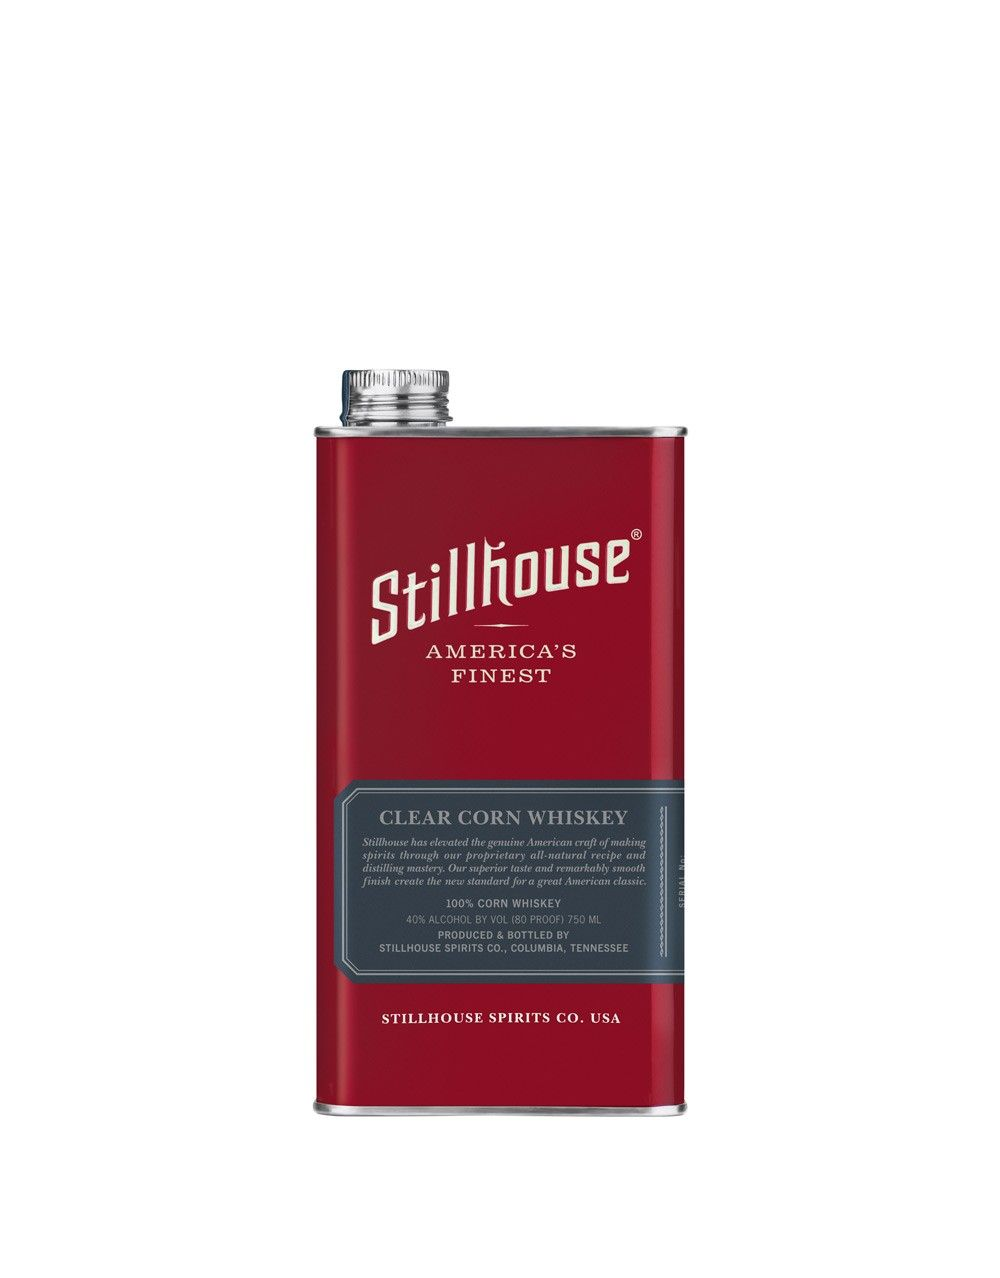 Stillhouse Whiskey Best Package Designs